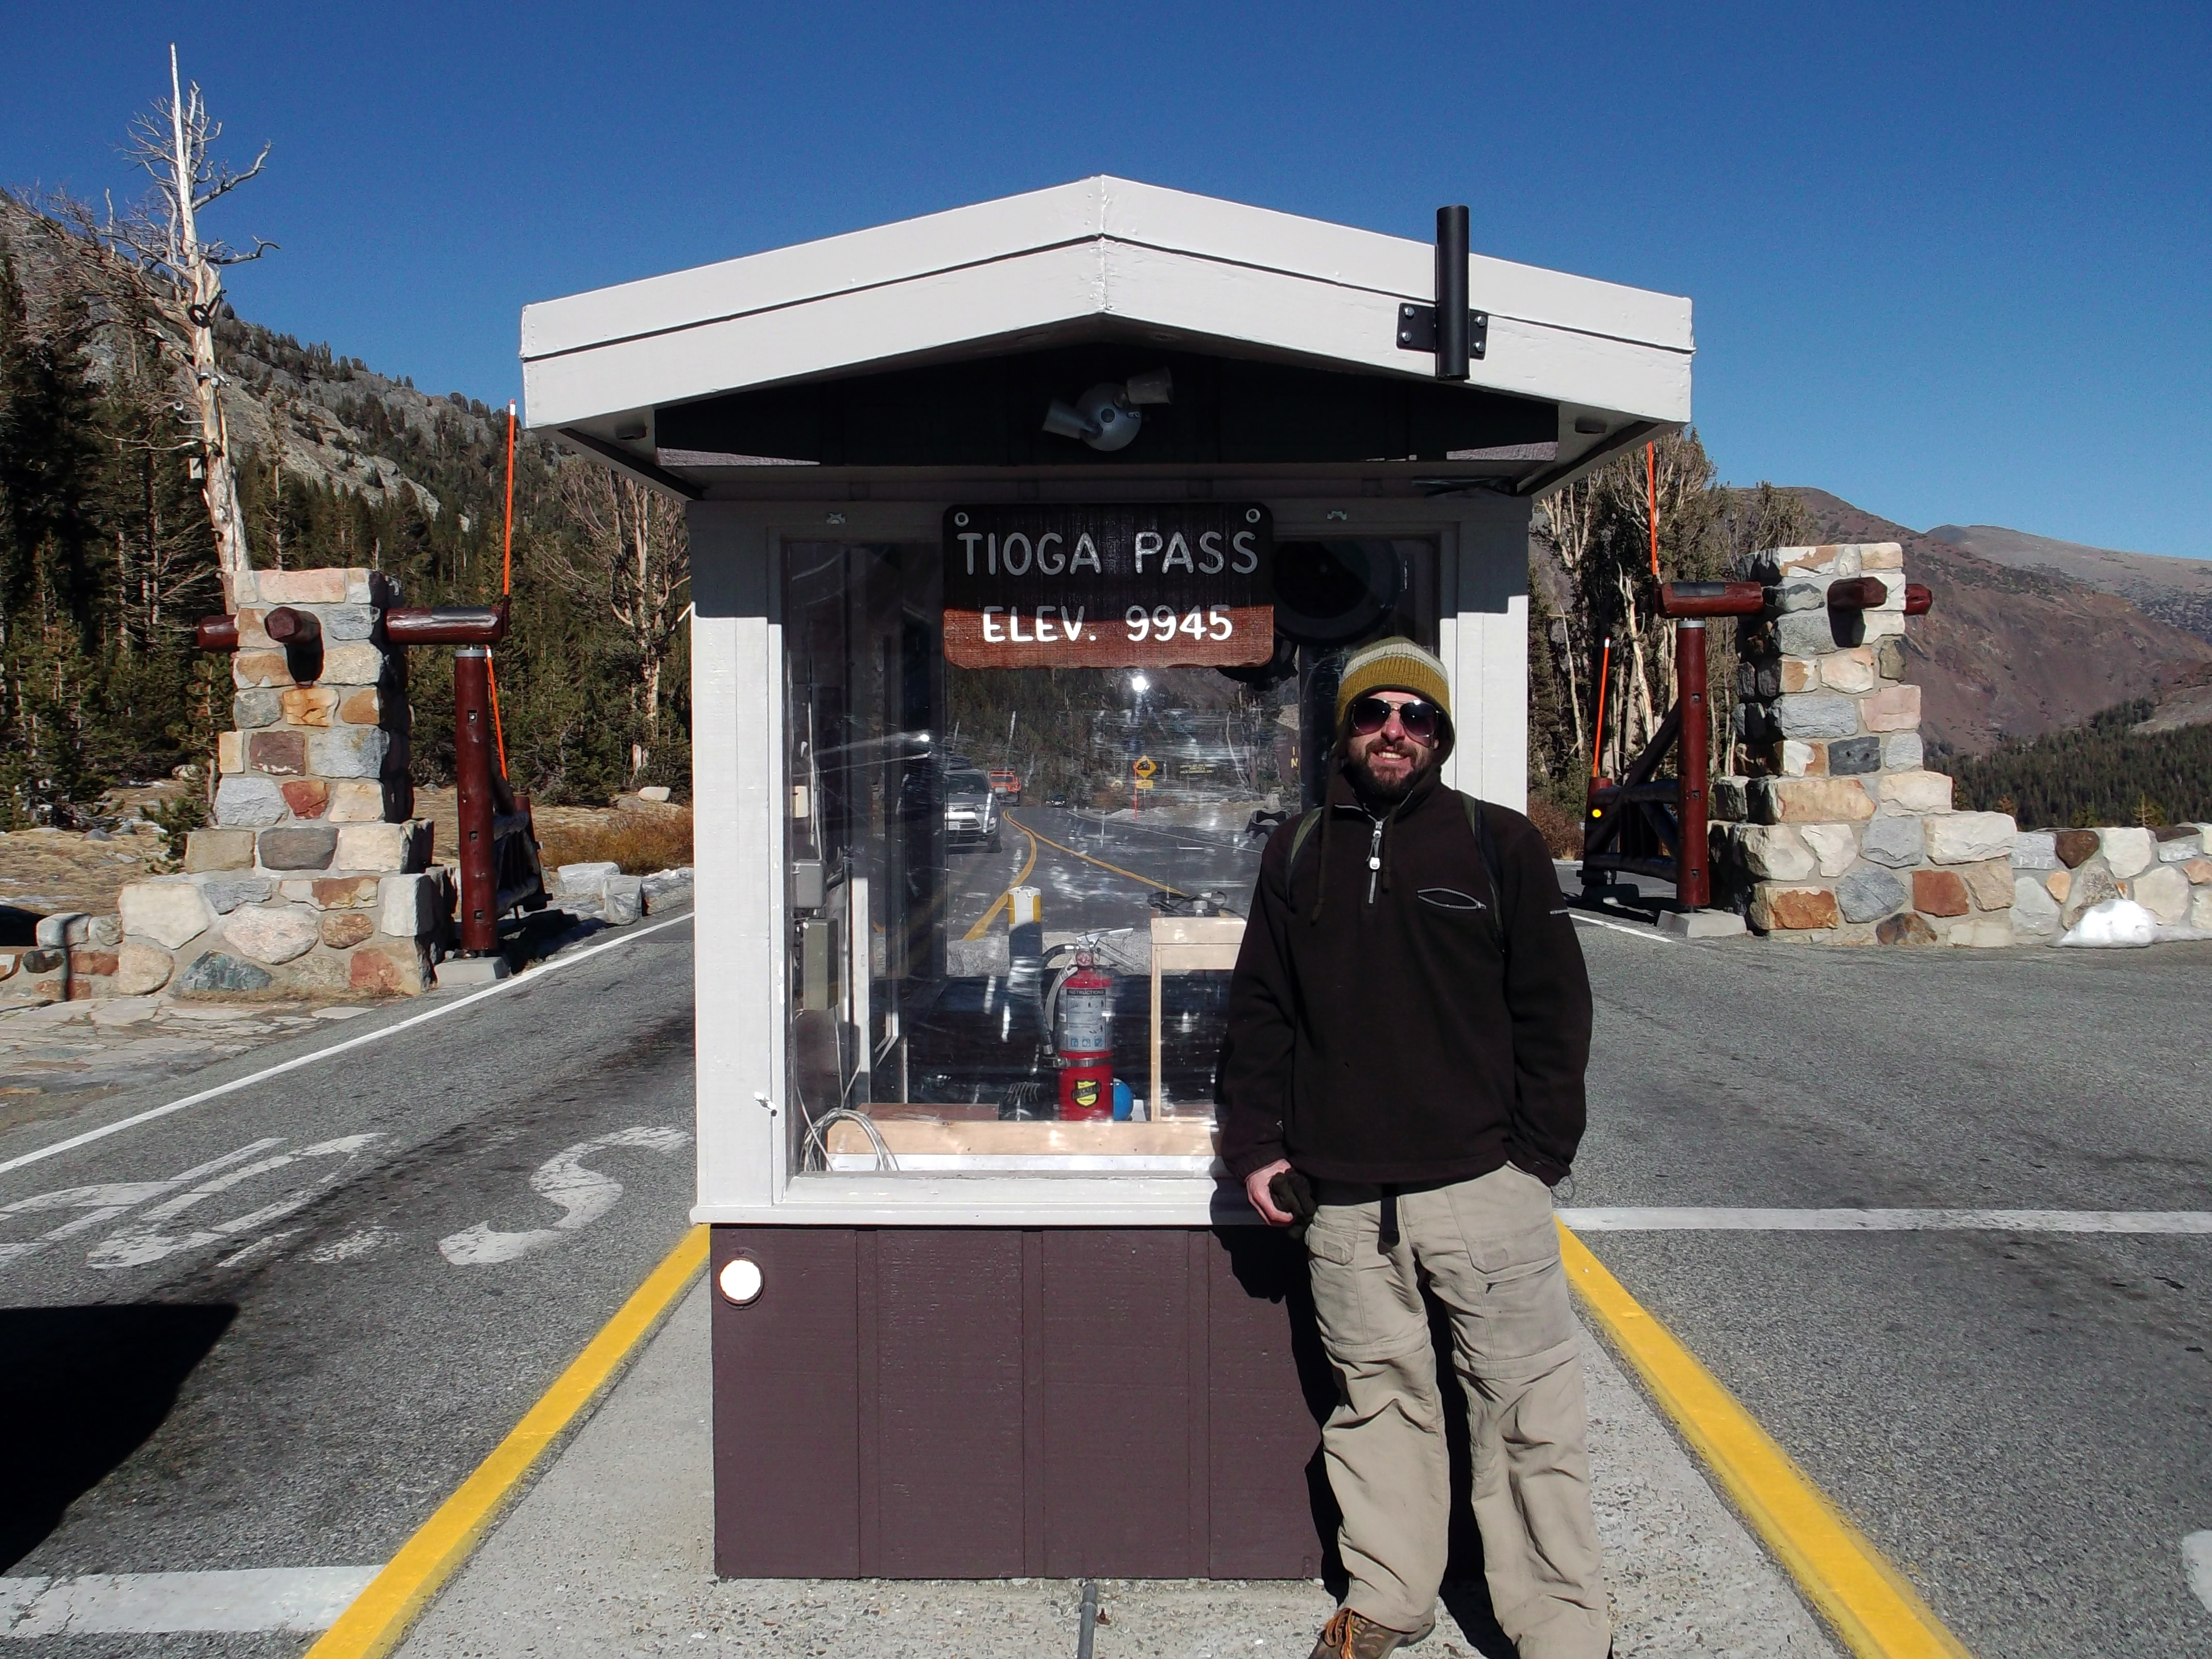 Your friendly neighborhood wordsmith adorns the Tioga Pass entrance station to Yosemite, a place where normally no man can stand between November and May. But then this ain't your parents' world anymore, is it?  (photo by S. McCarthy)